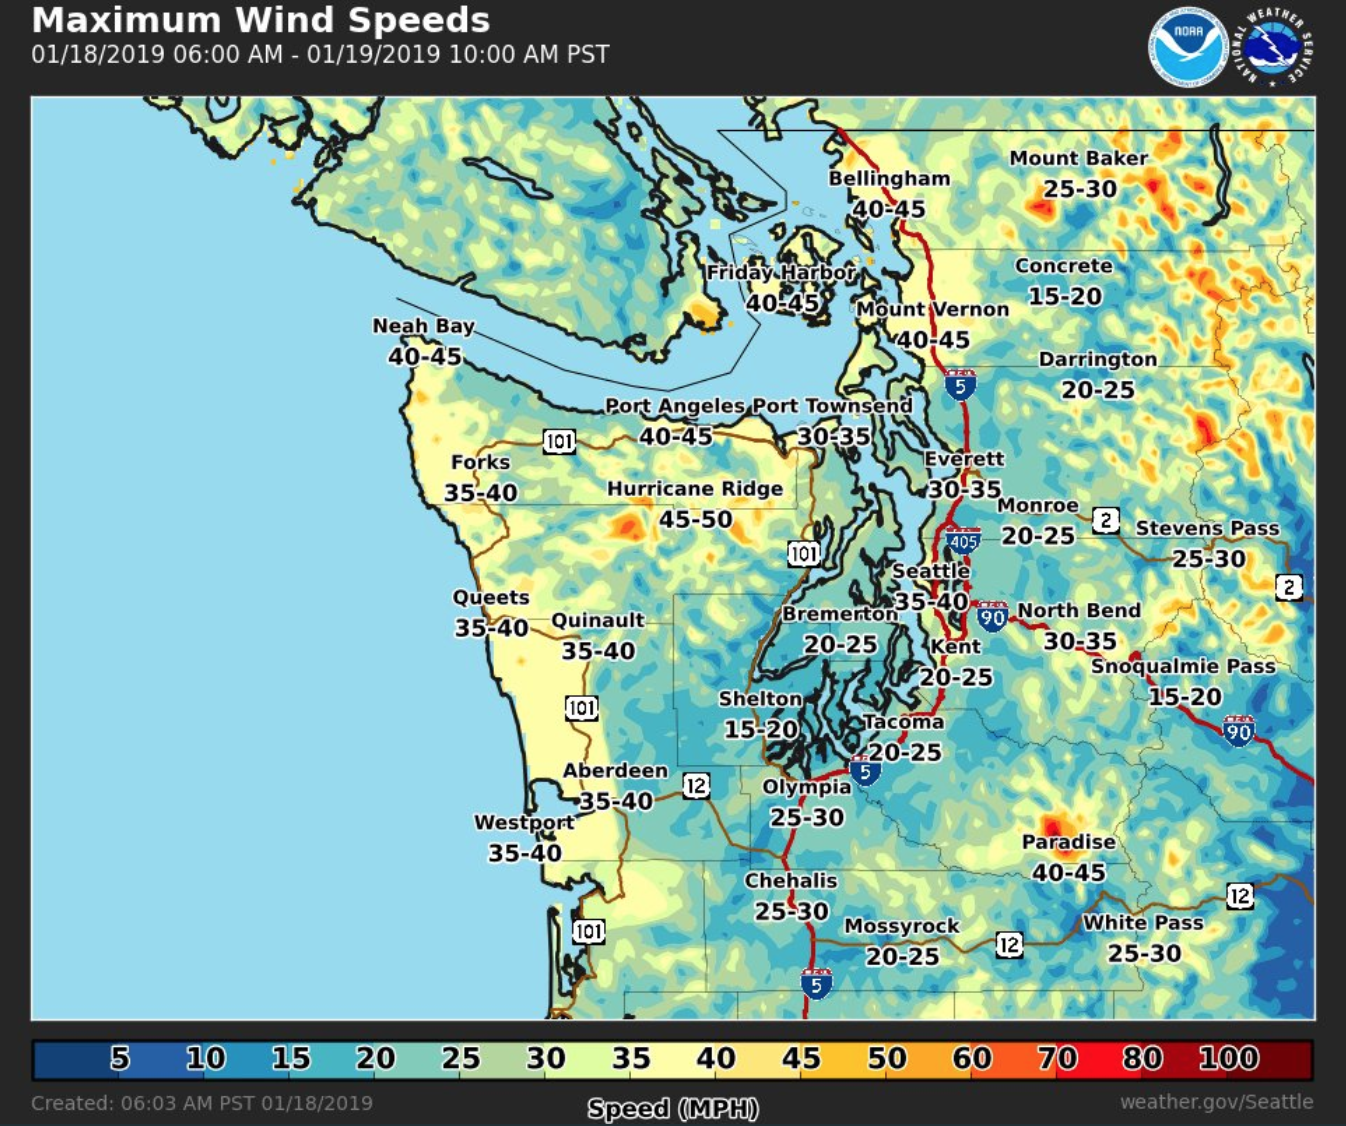 More wind, rain Friday afternoon for Seattle, Puget Sound region